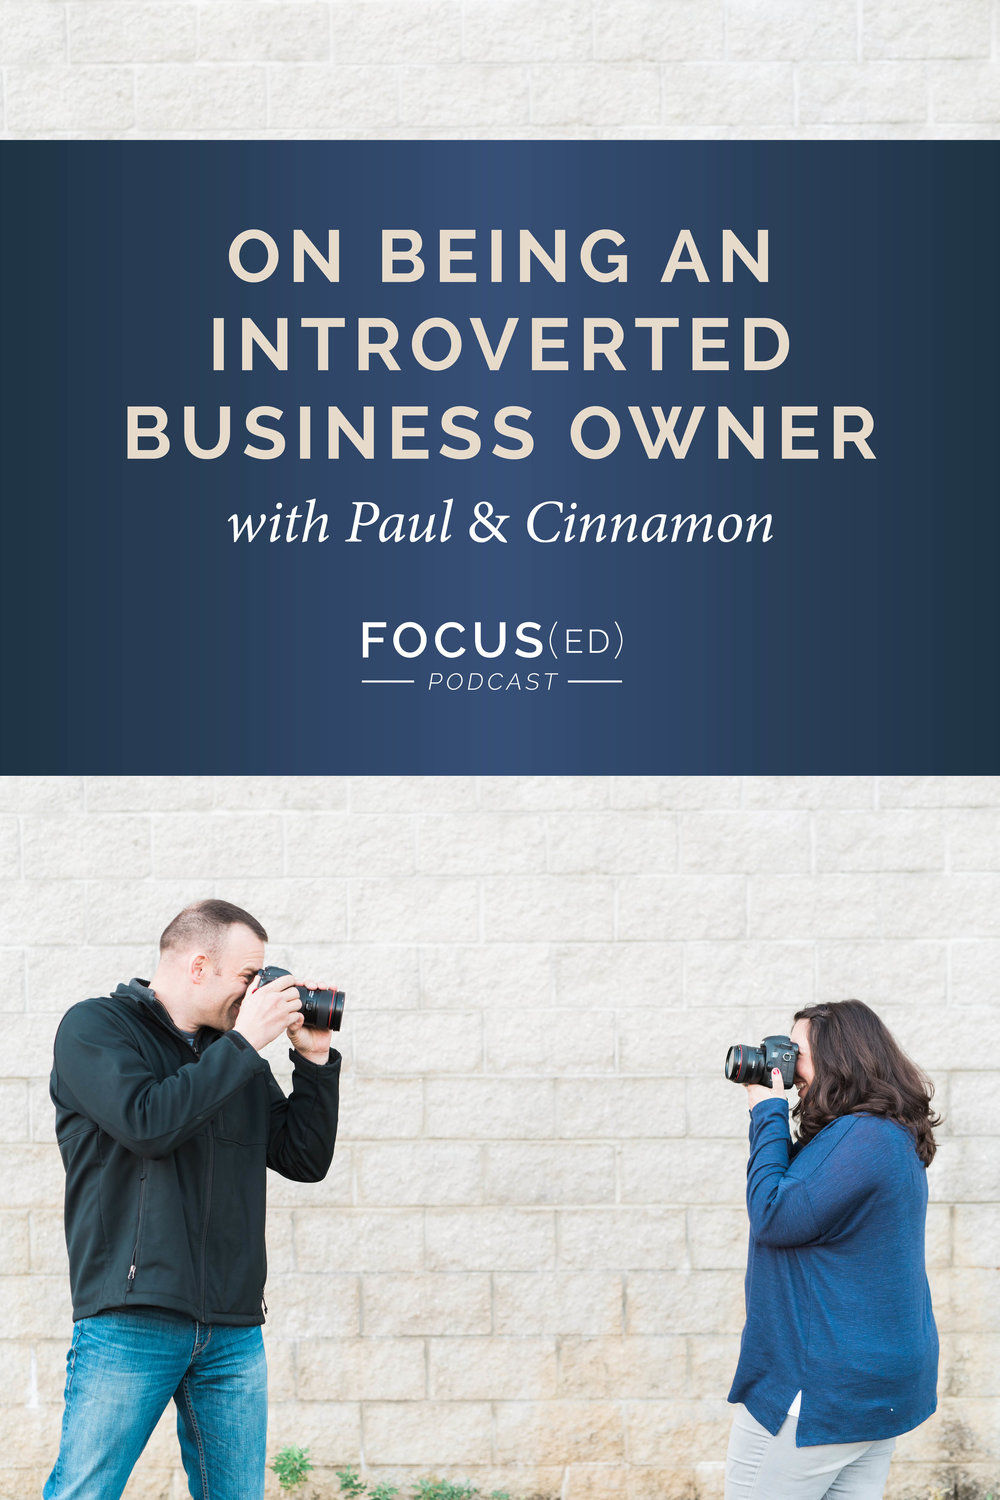 Being an introverted business owner | Focused Podcast